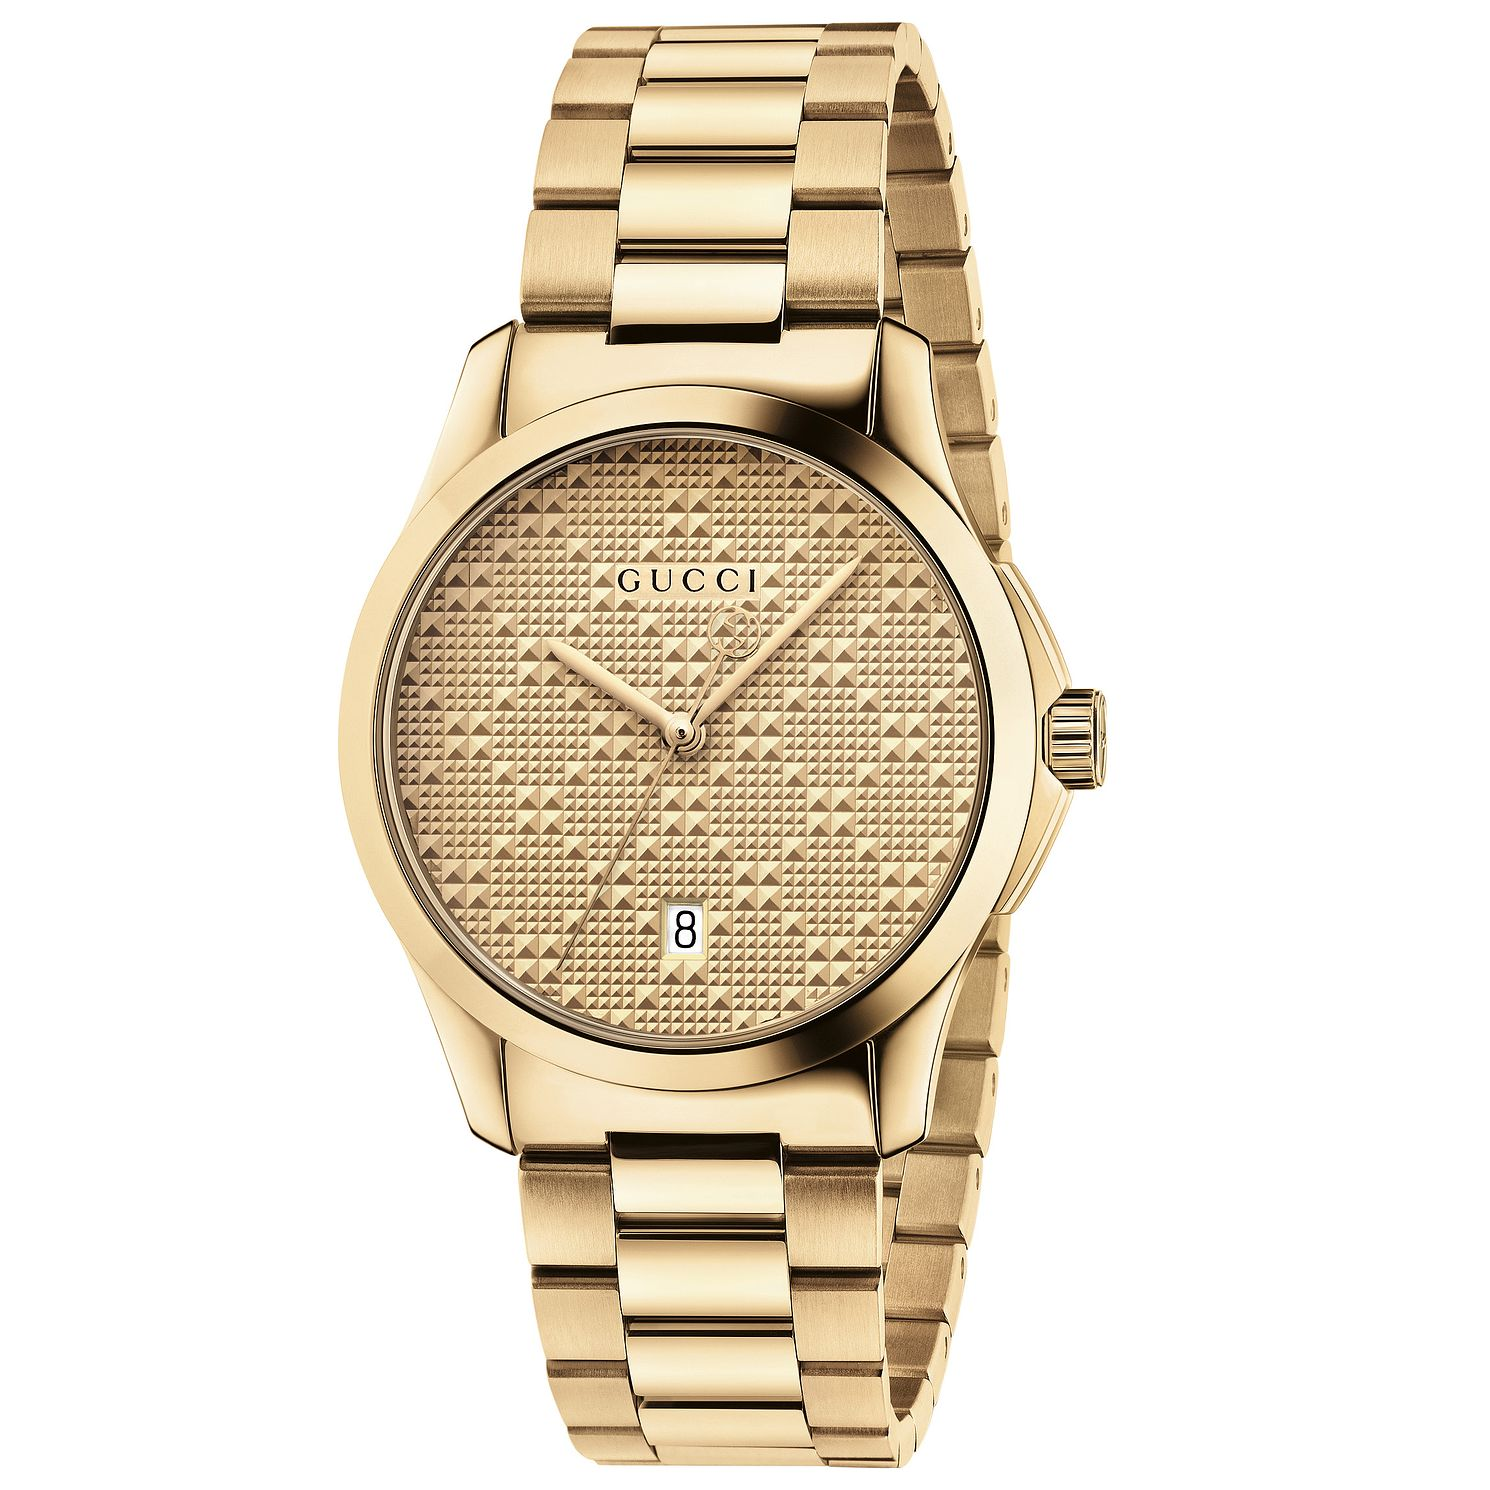 Gucci G-Timeless Yellow Gold Plated Bracelet Watch - Product number 4963997